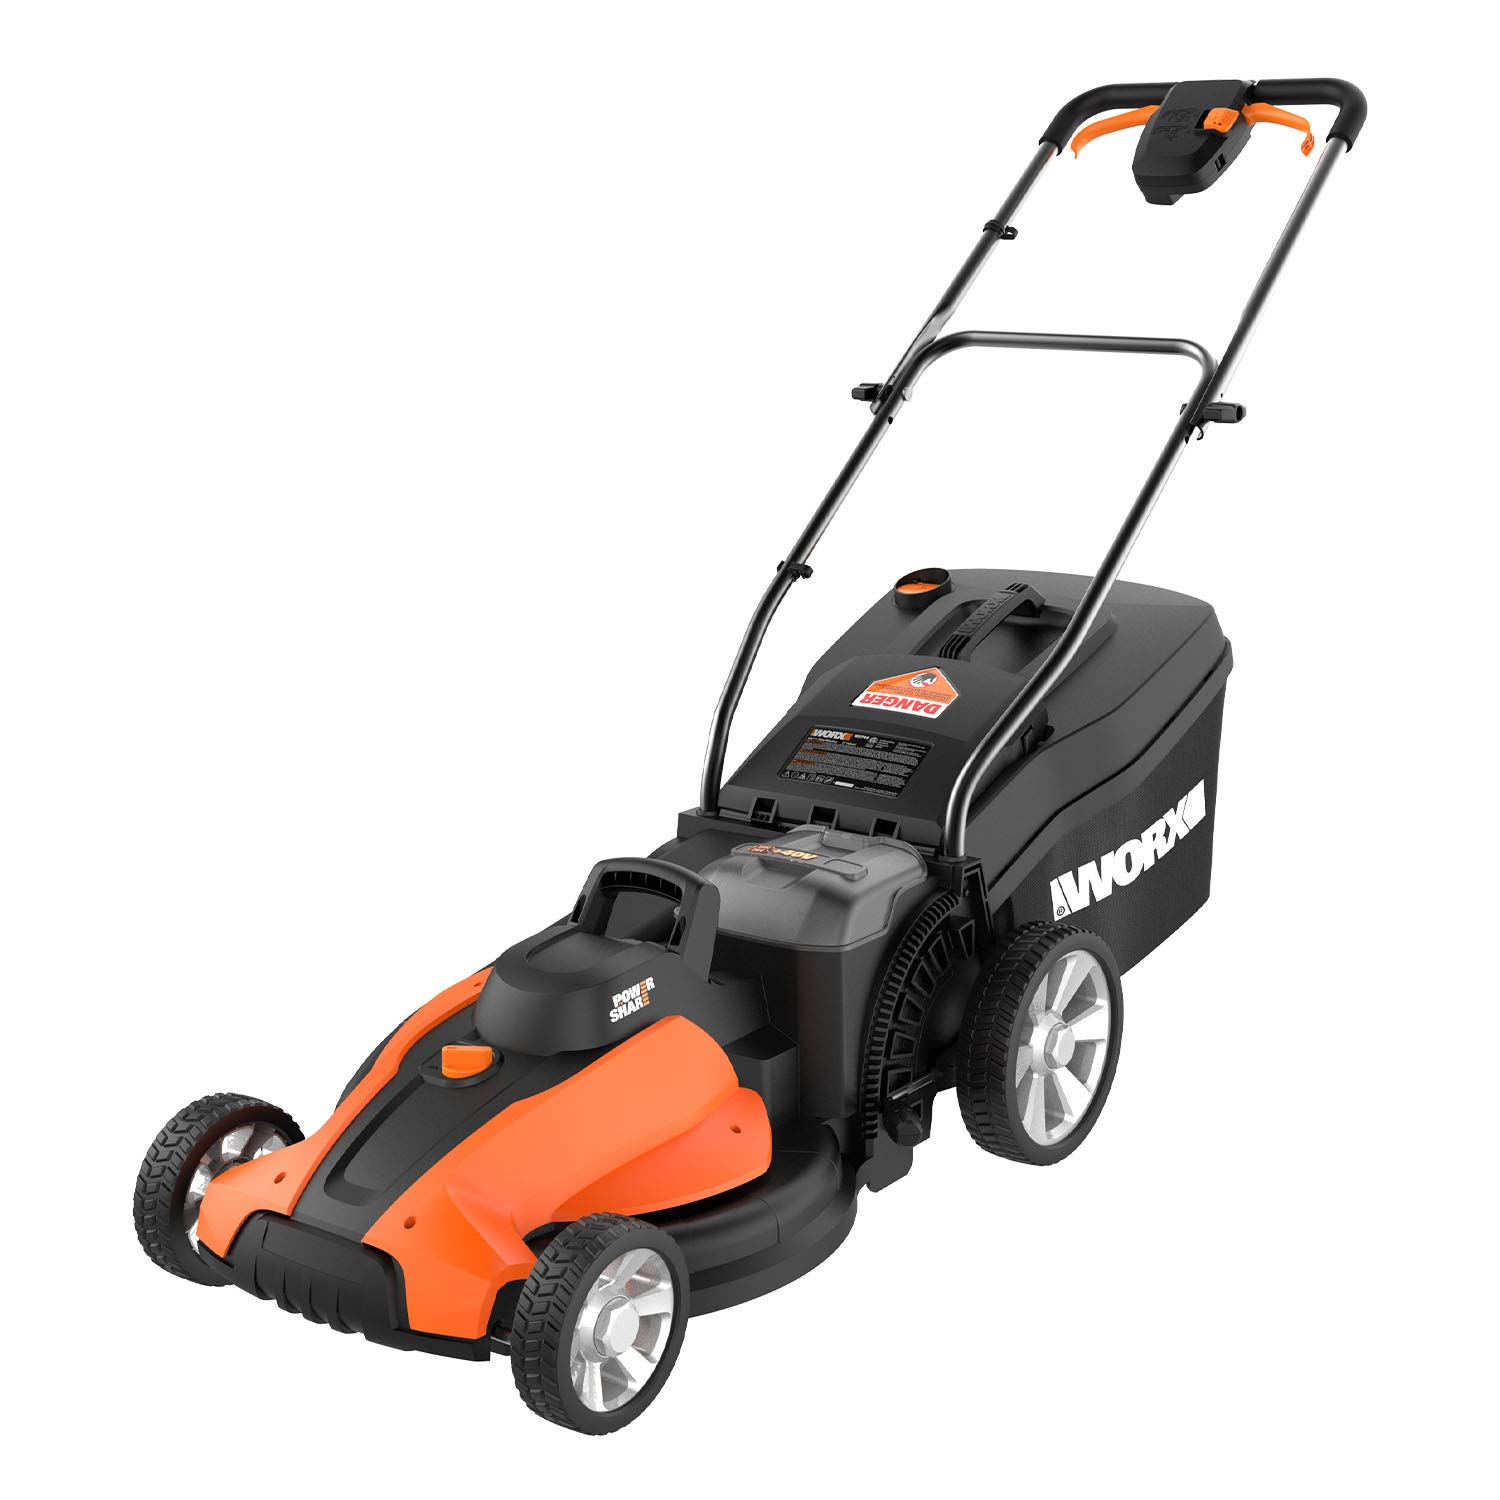 WG744 17 inch Cordless Batteries Included